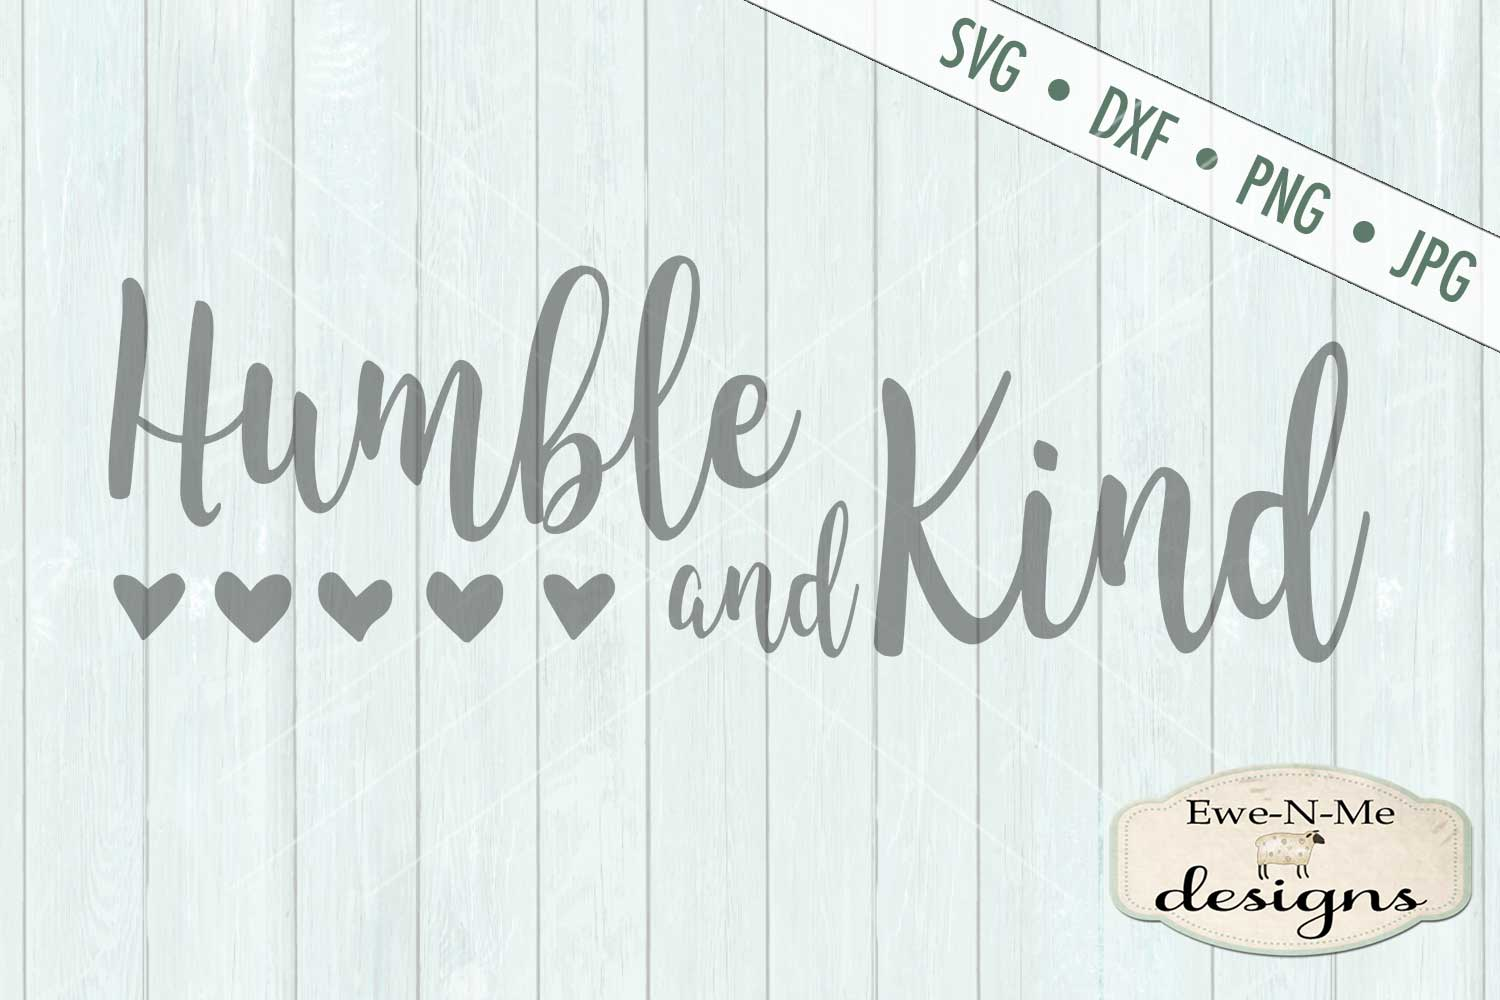 Humble and Kind - Hearts - SVG DXF Files example image 2